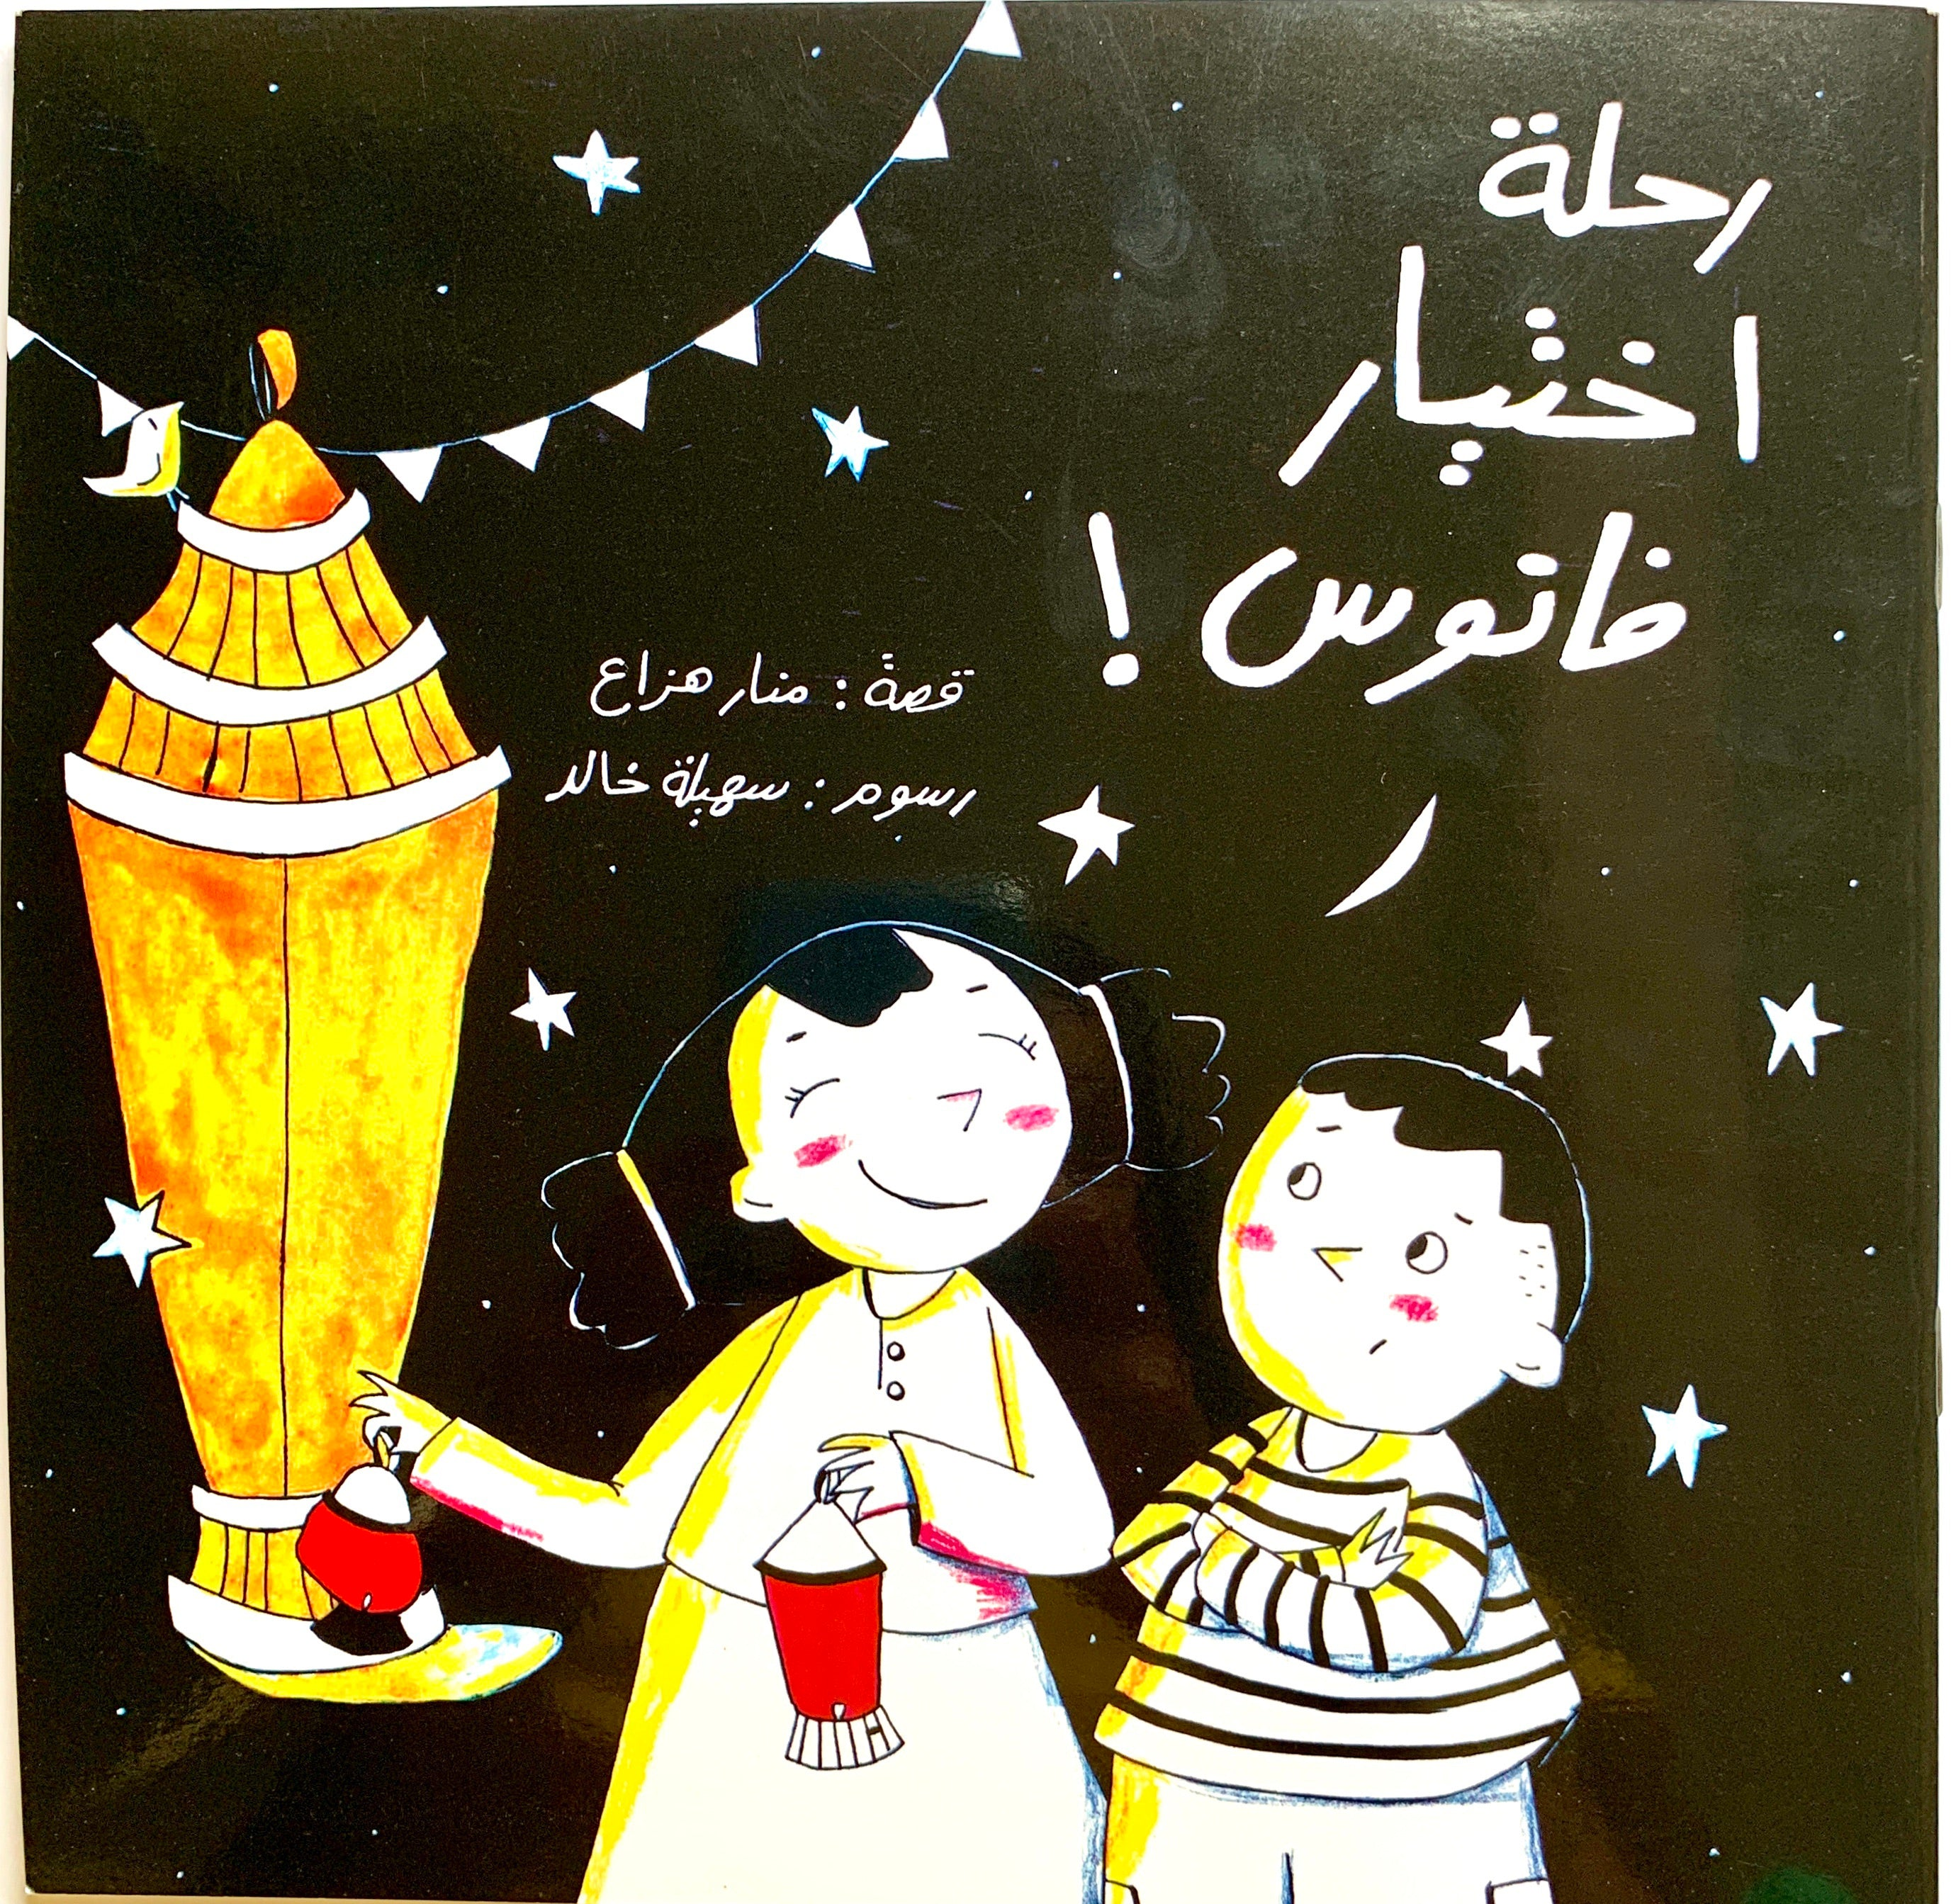 The Journey of Selecting the Lantern! / رحلة اختيار فانوس